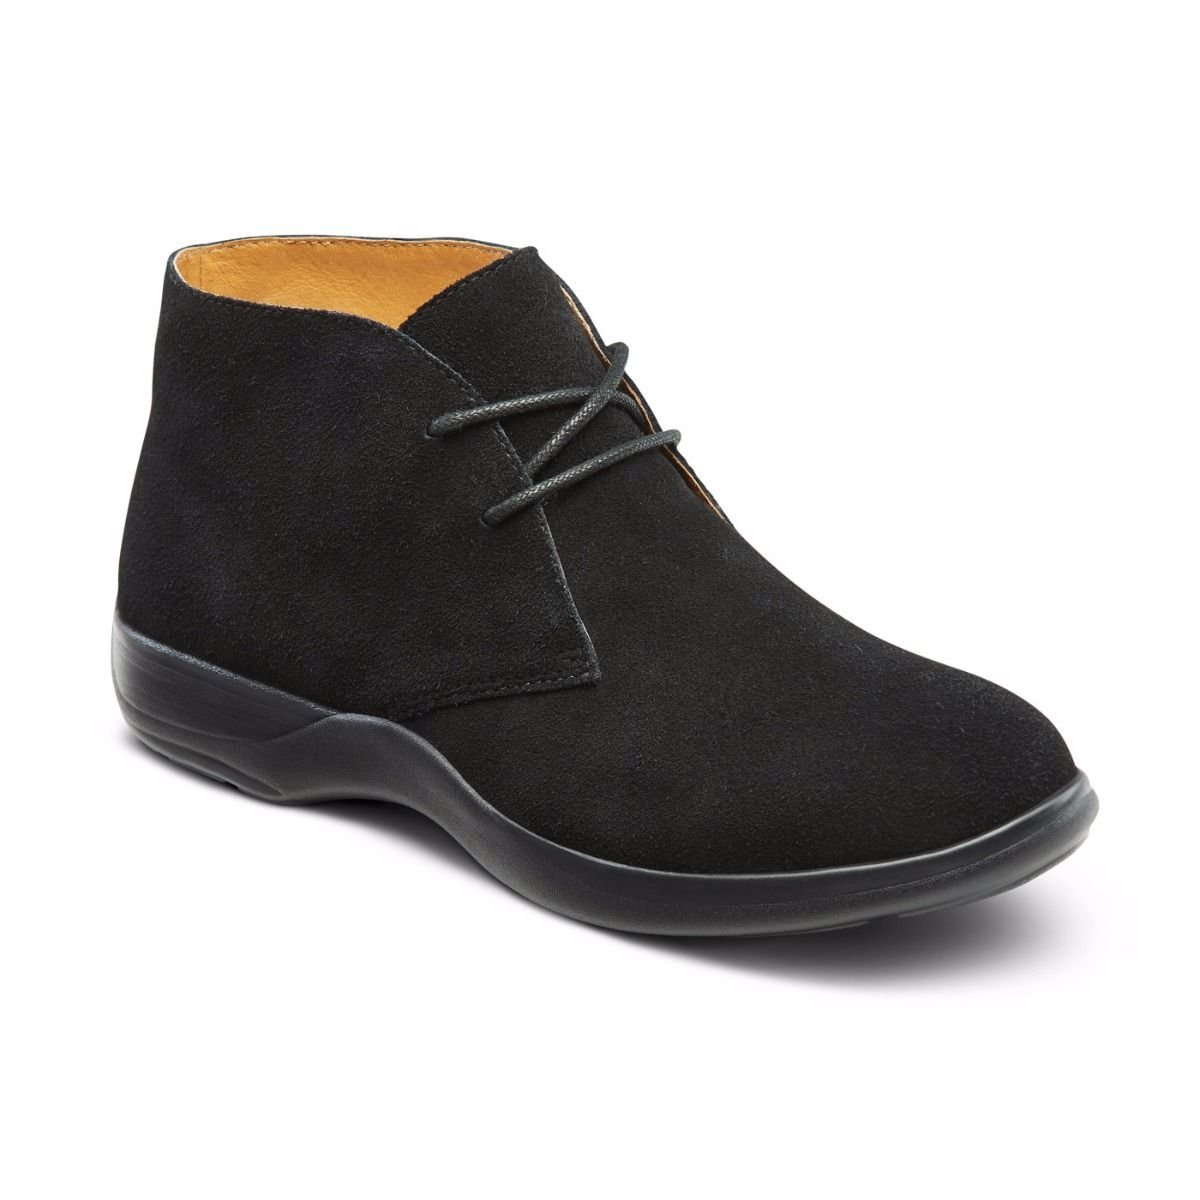 Dr. Comfort Women's Cara Casual Suede Leather Bootie Chukka Boot, Black, 9.5 Wide (C/D) US